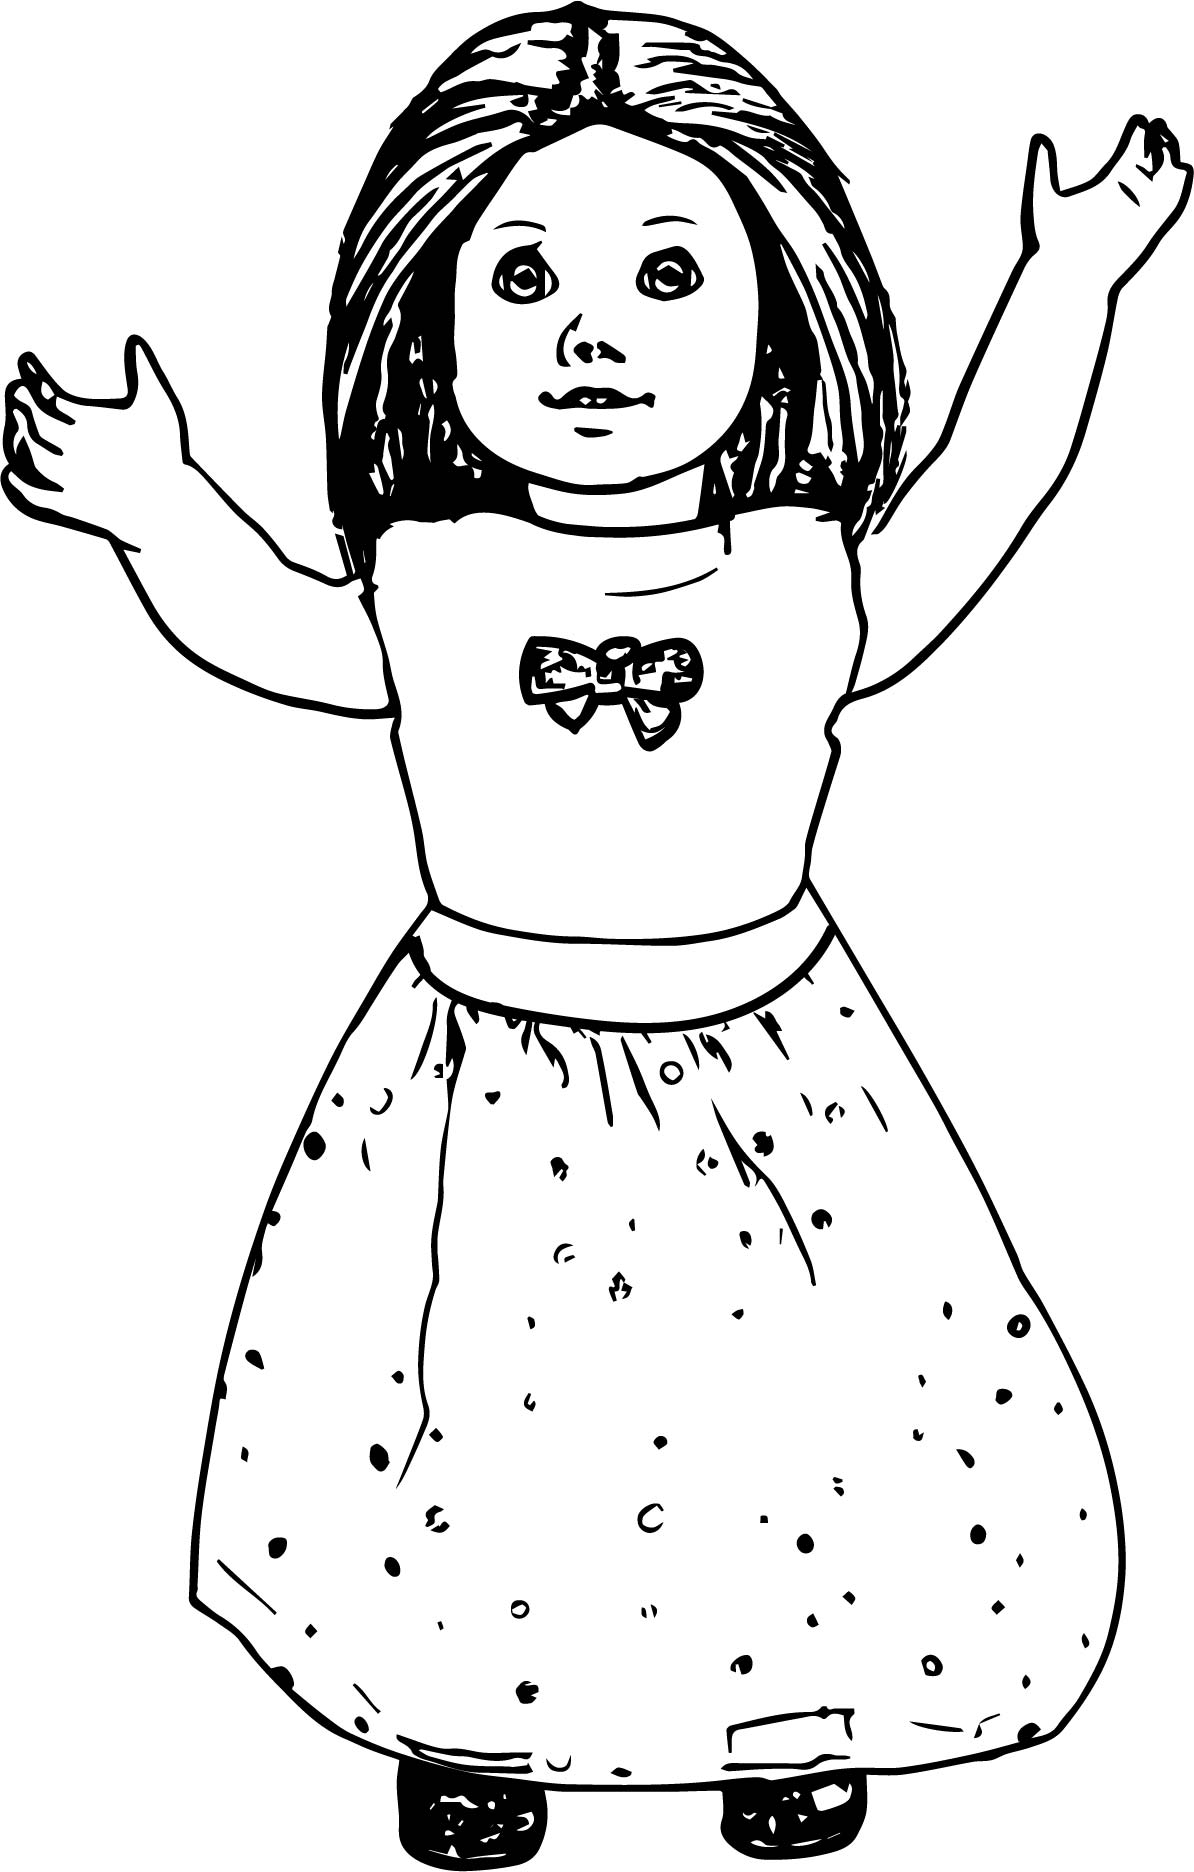 american girl doll coloring page american girl doll toy coloring page